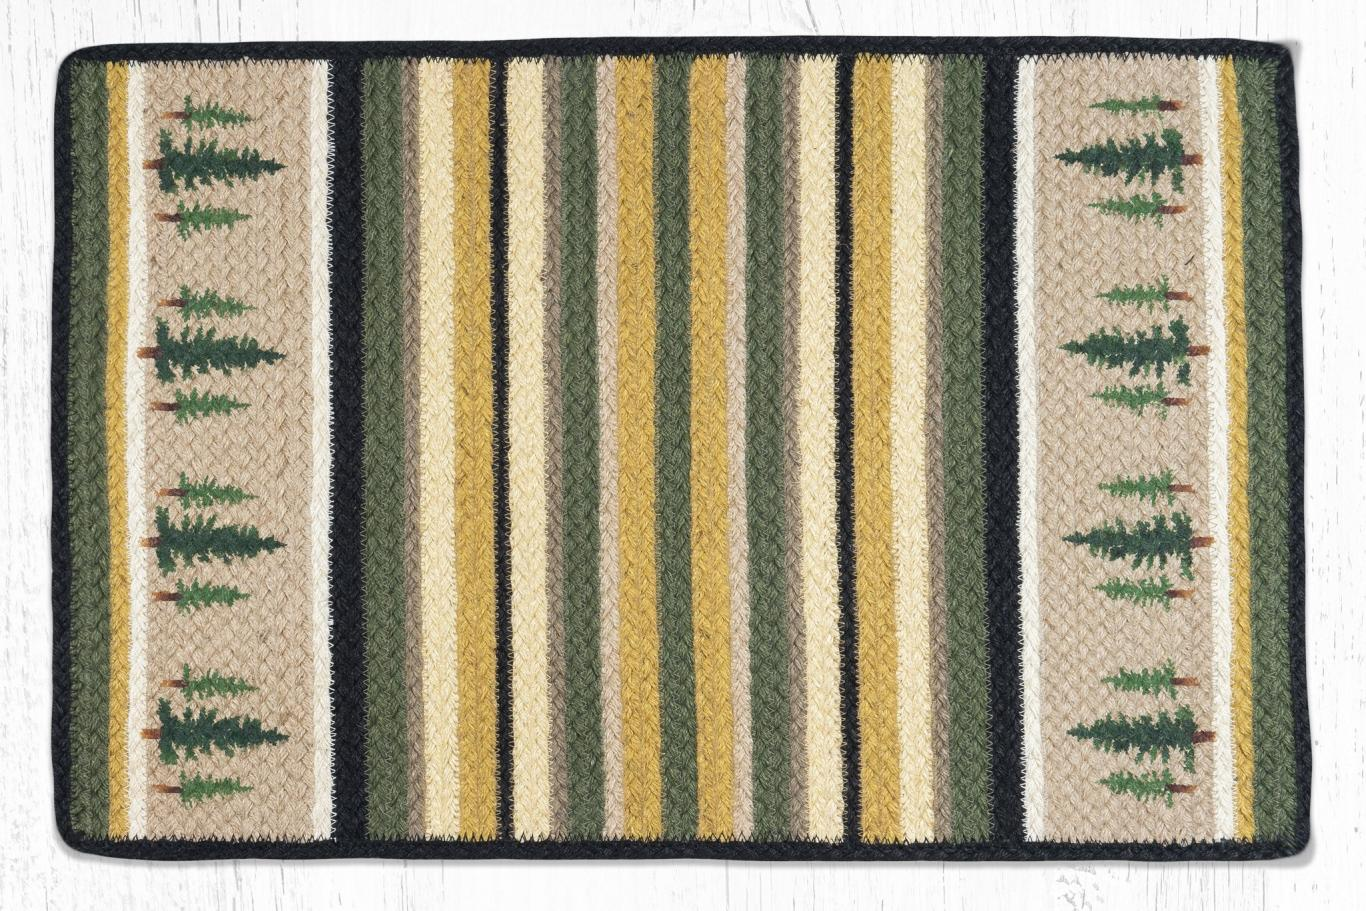 Earth Rugs -Vertical Stripe Tall Timbers Design Oblong-2